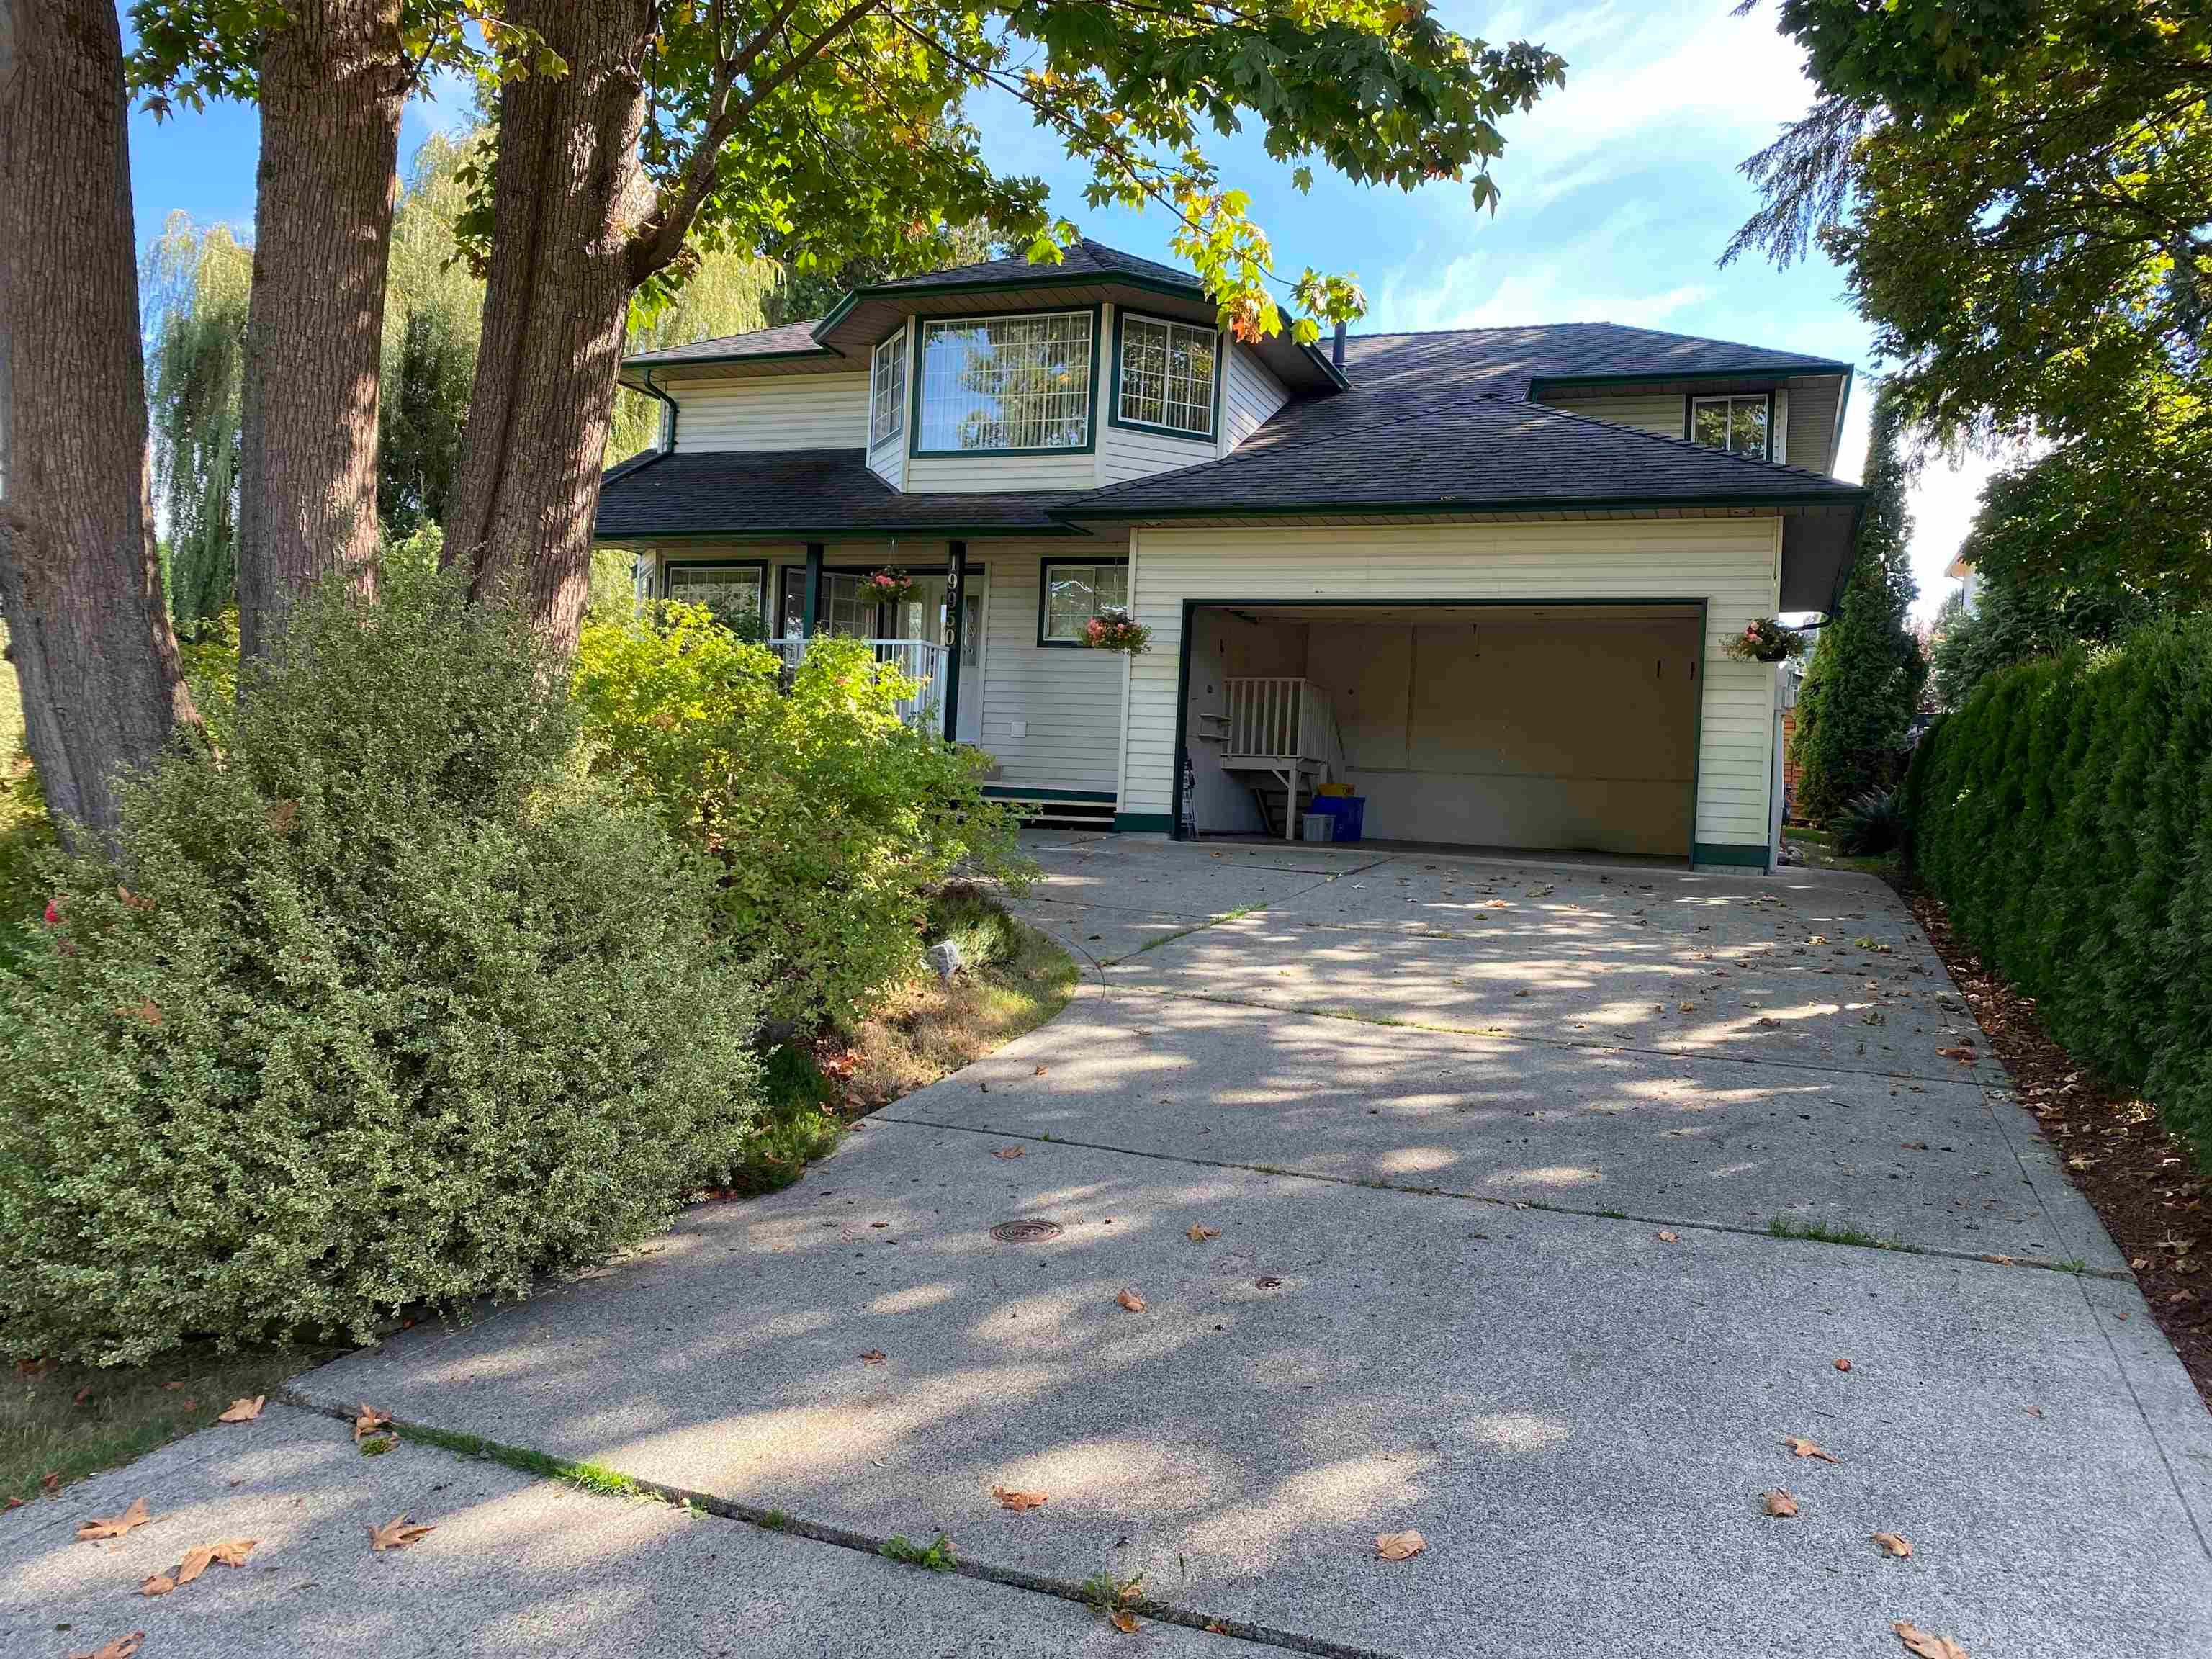 19950 48A AVENUE - Langley City House/Single Family for sale, 4 Bedrooms (R2615832) - #20